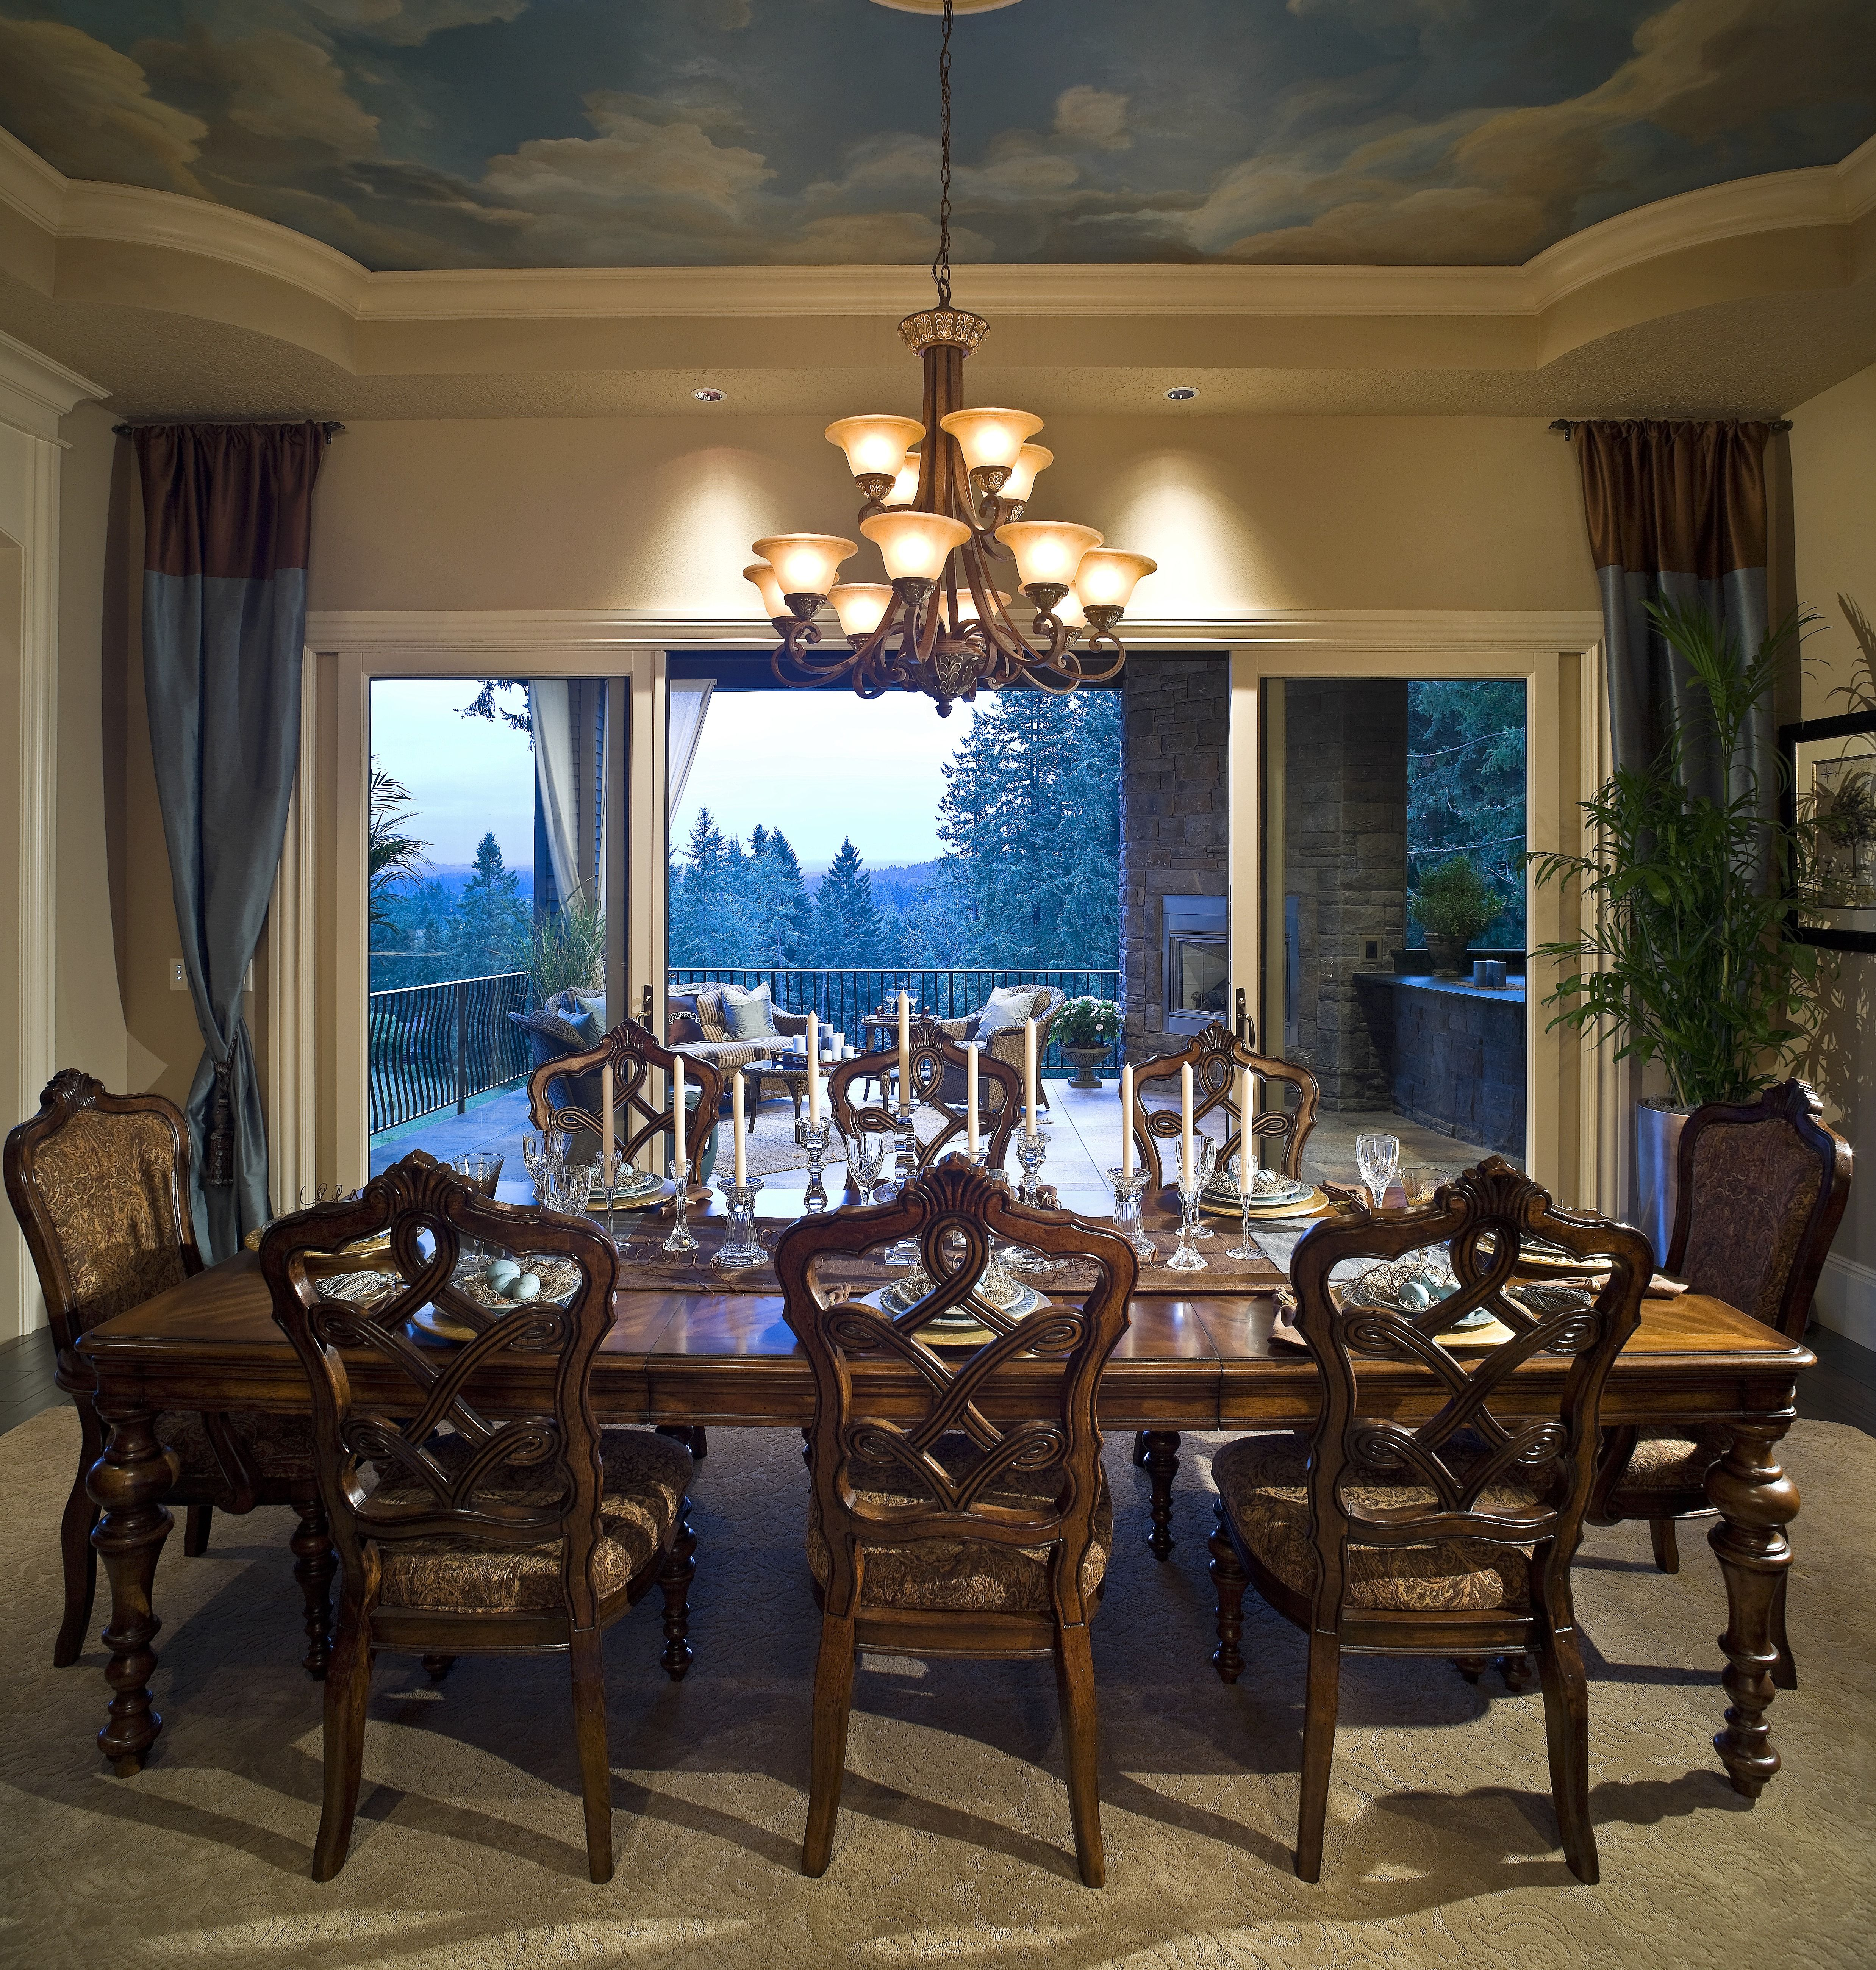 This large dining room has a beautiful view through ...